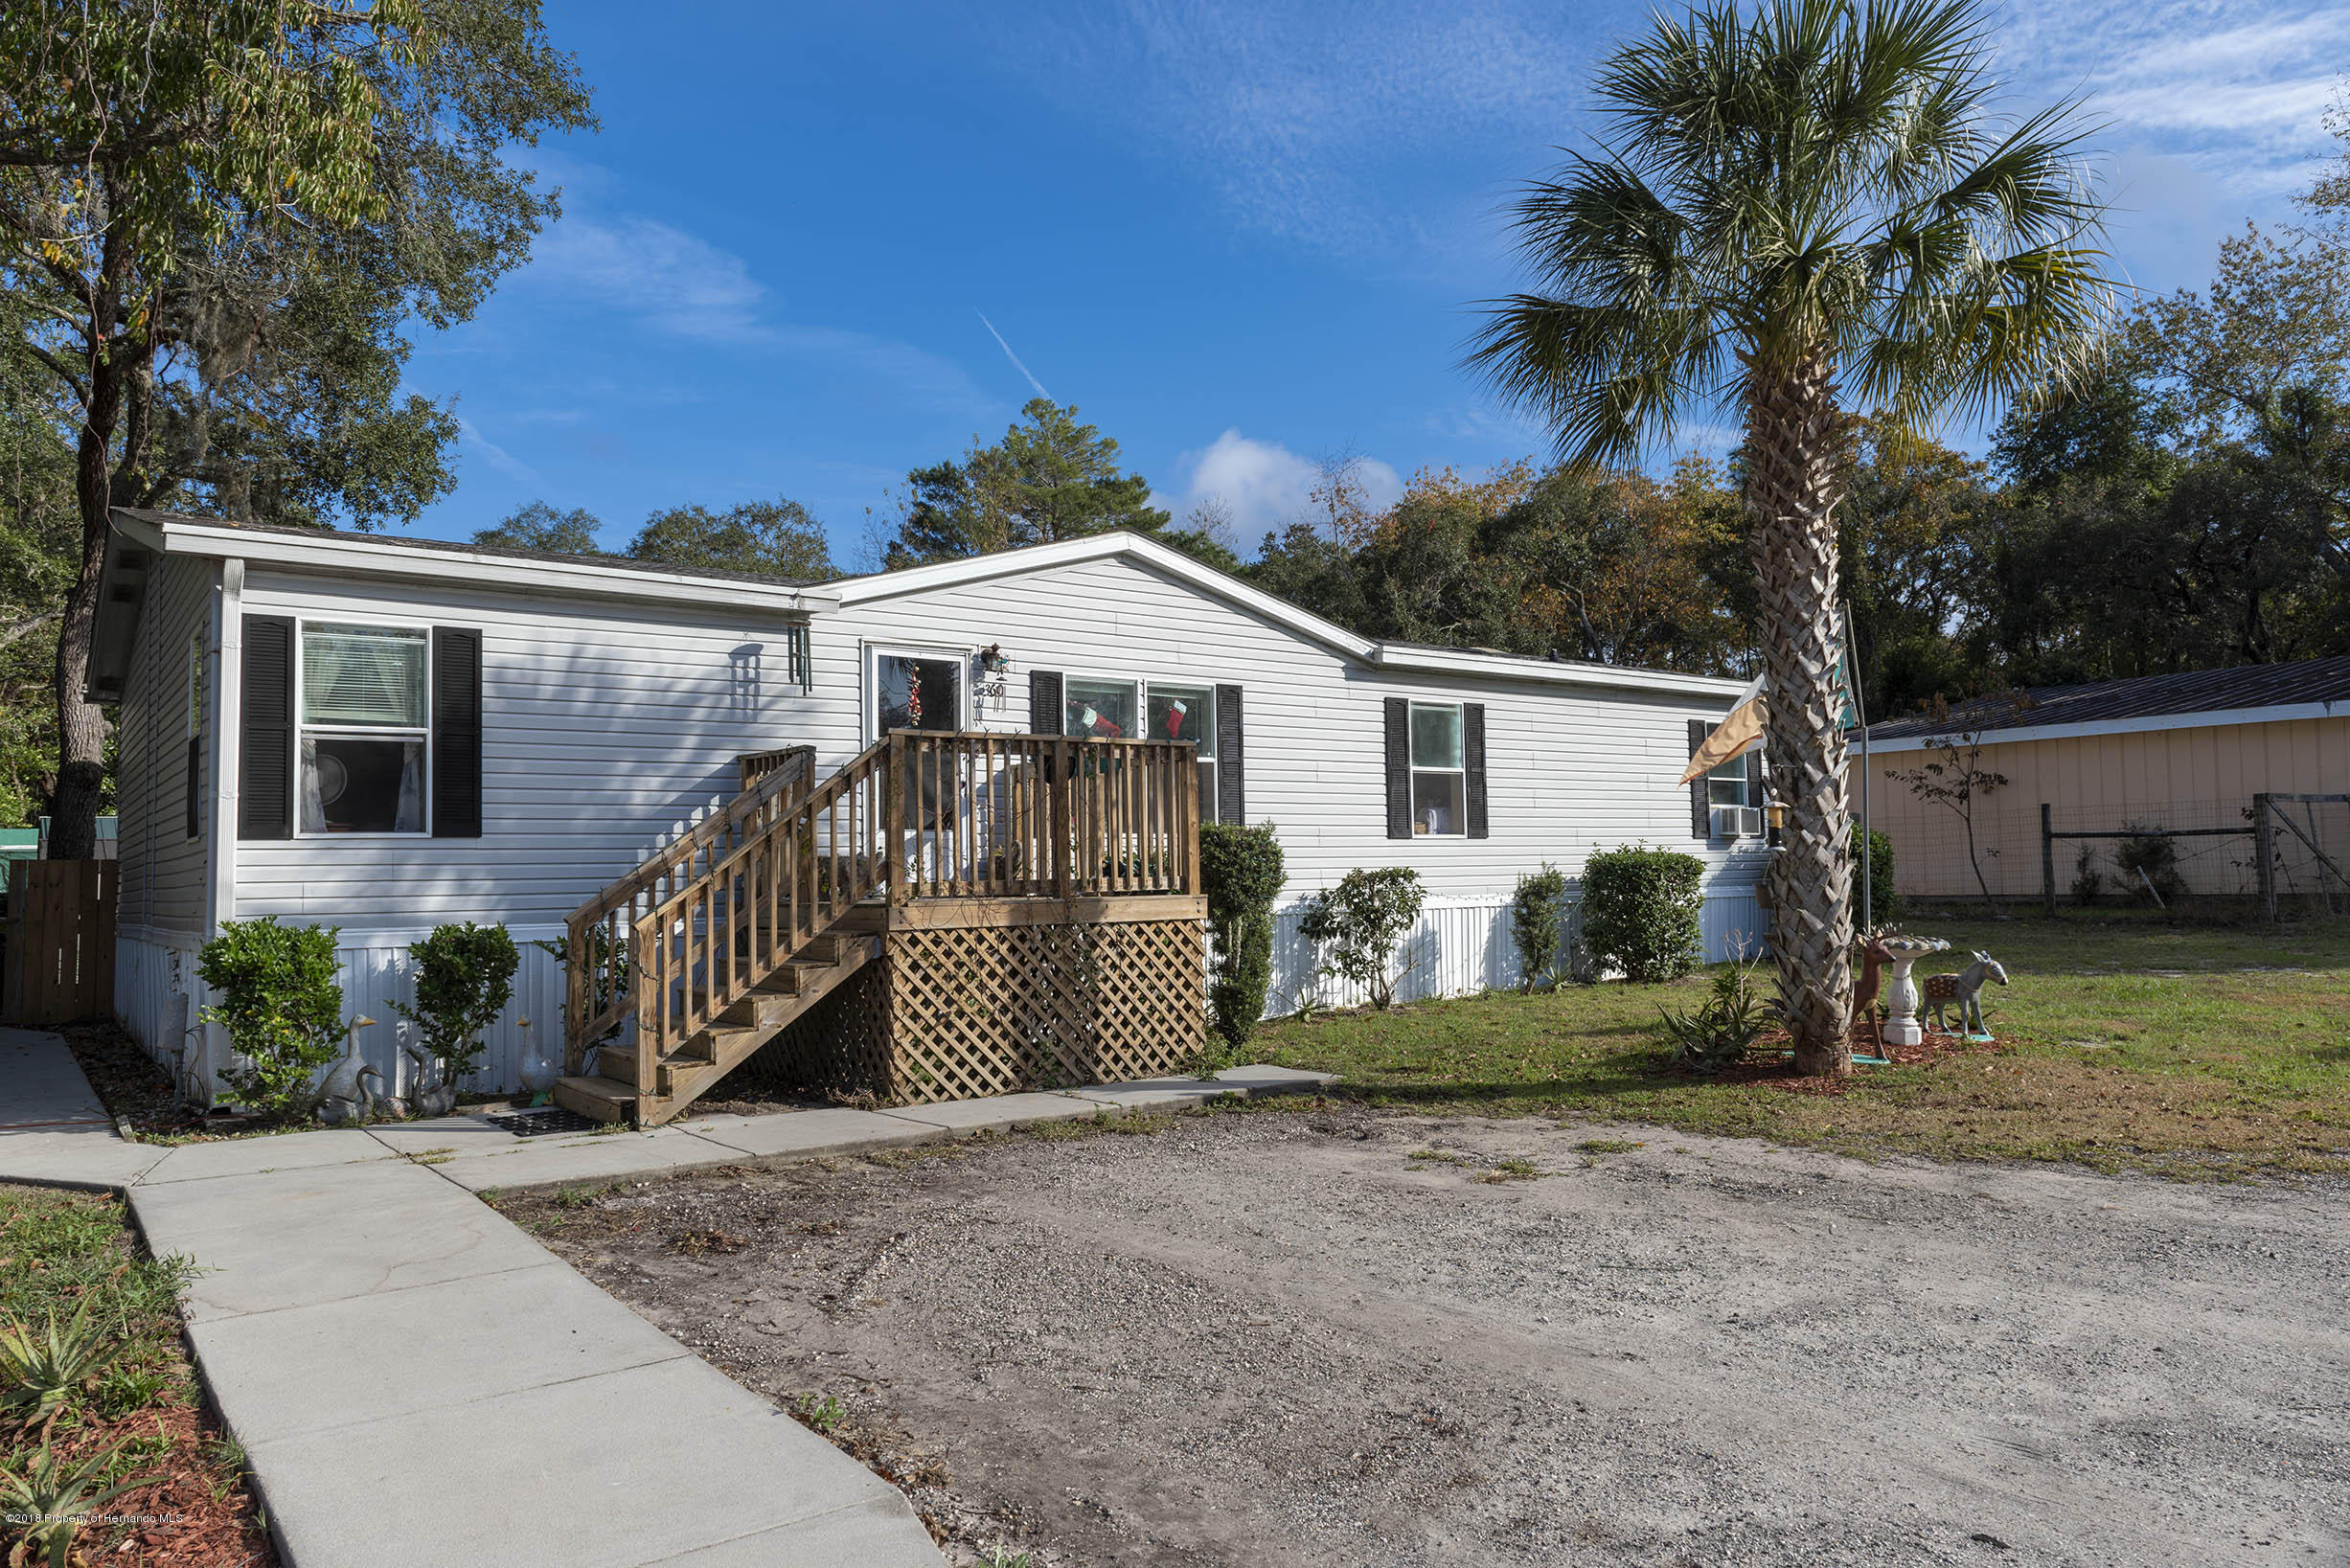 3360 Parlow Avenue, Spring Hill, Florida 34606, 3 Bedrooms Bedrooms, ,2 BathroomsBathrooms,Residential,For Sale,Parlow,2197338